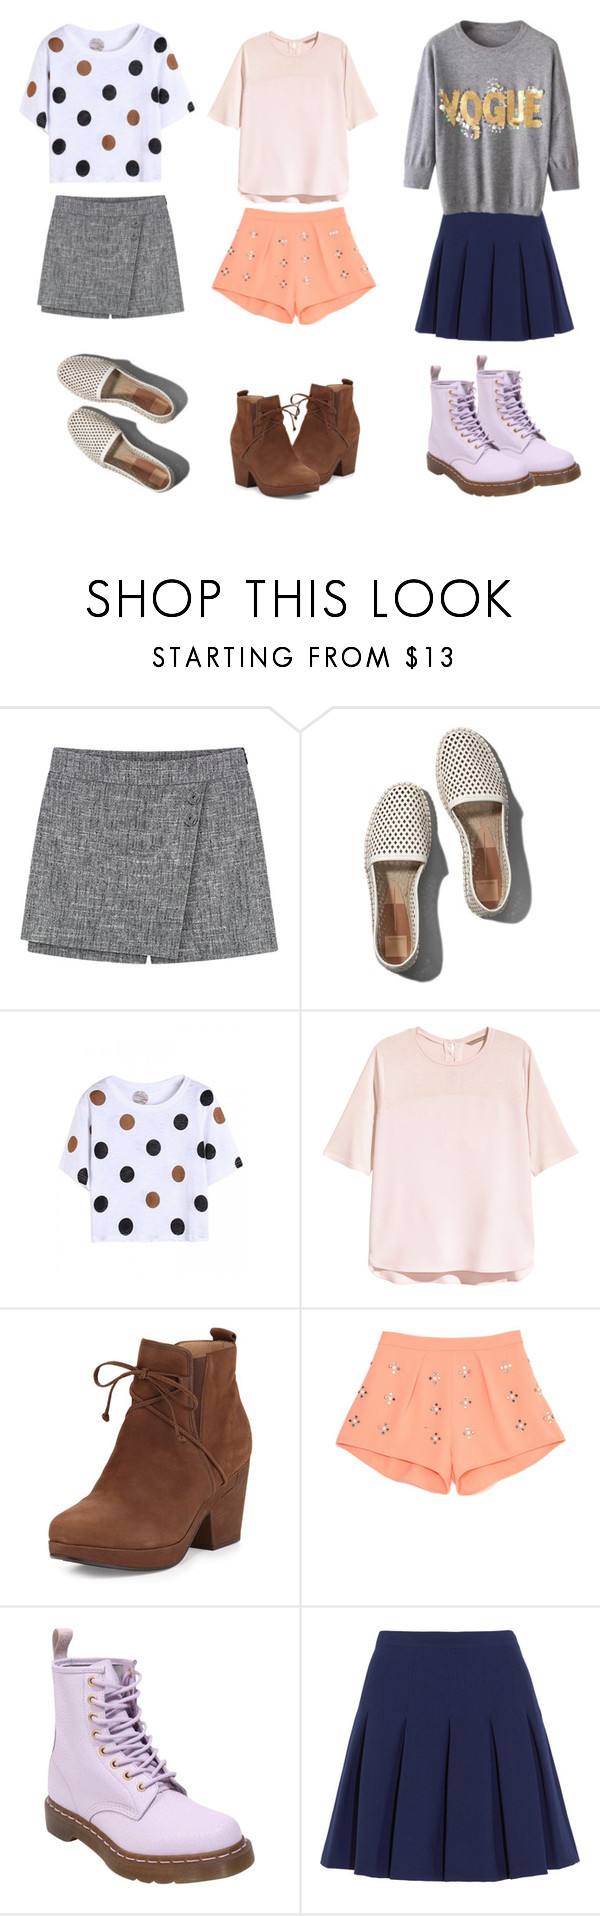 """""""My time"""" by pink1dmz ❤ liked on Polyvore featuring Abercrombie & Fitch, H&M, Eileen Fisher, Clover Canyon, Dr. Martens and Diane Von Furstenberg"""